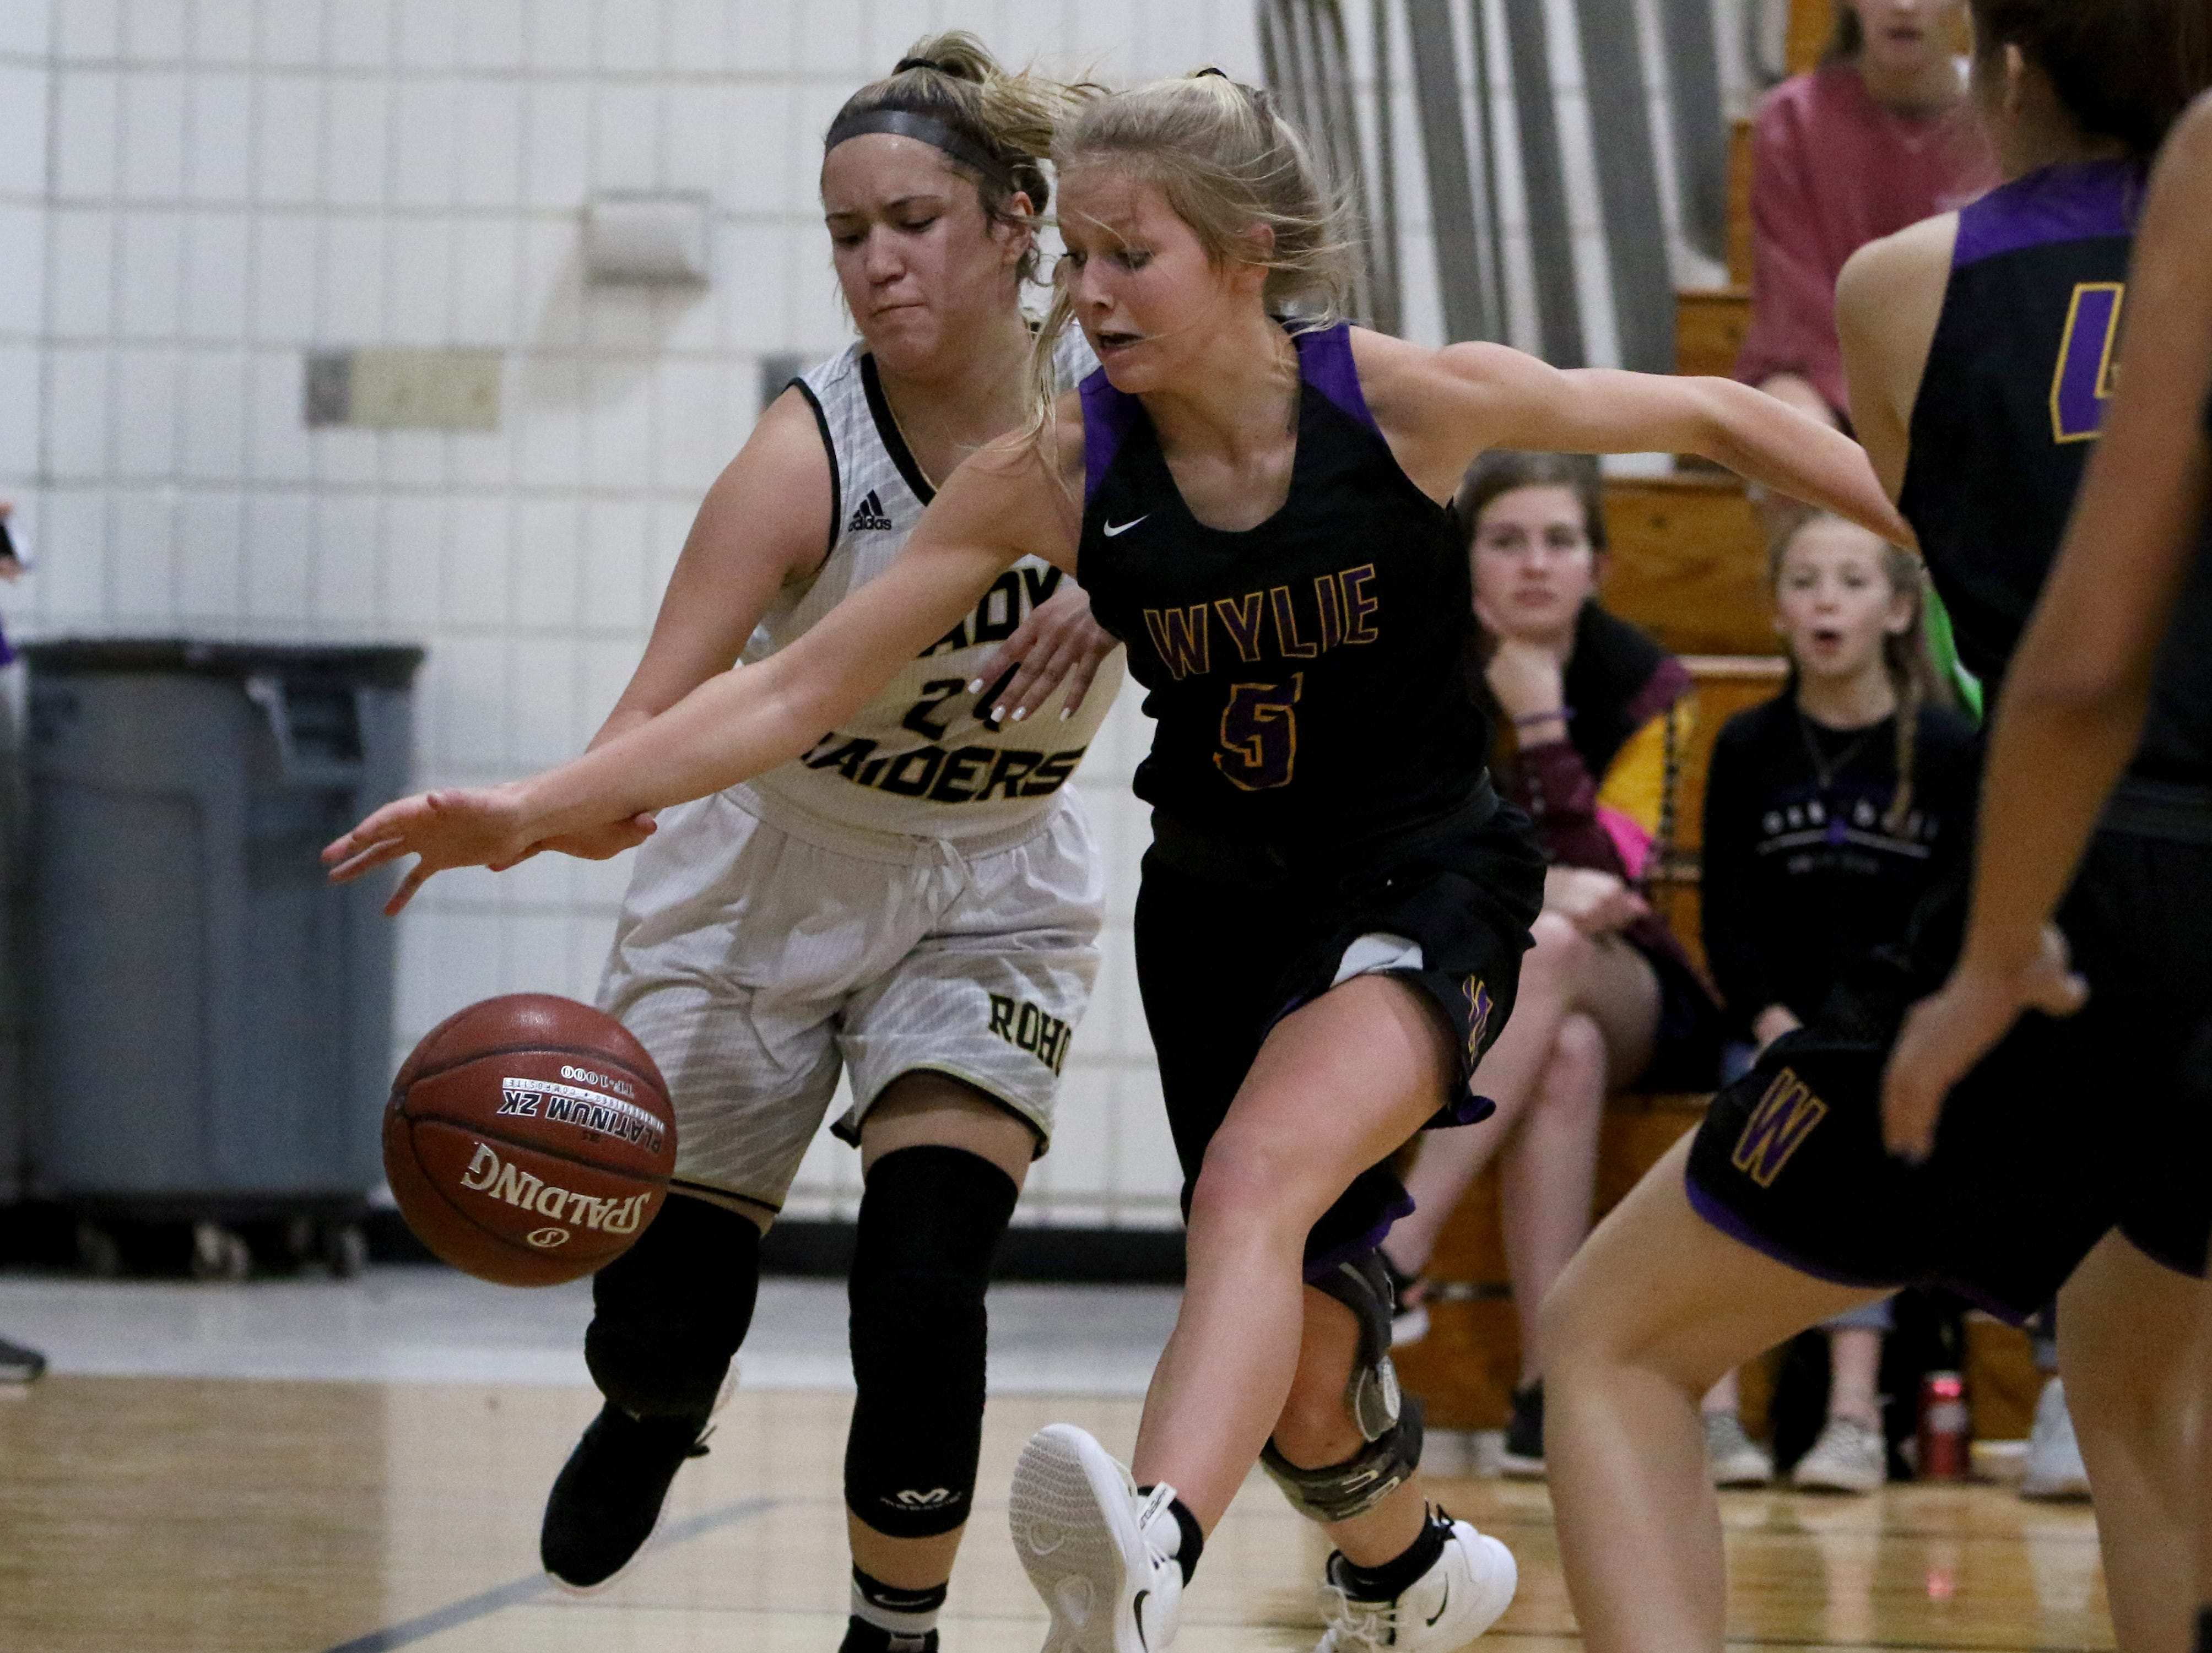 Rider's Atlea Cooke loses the ball to Abilene Wylie's Emma Melton Friday, Jan. 4, 2019 at McNiel Middle School.